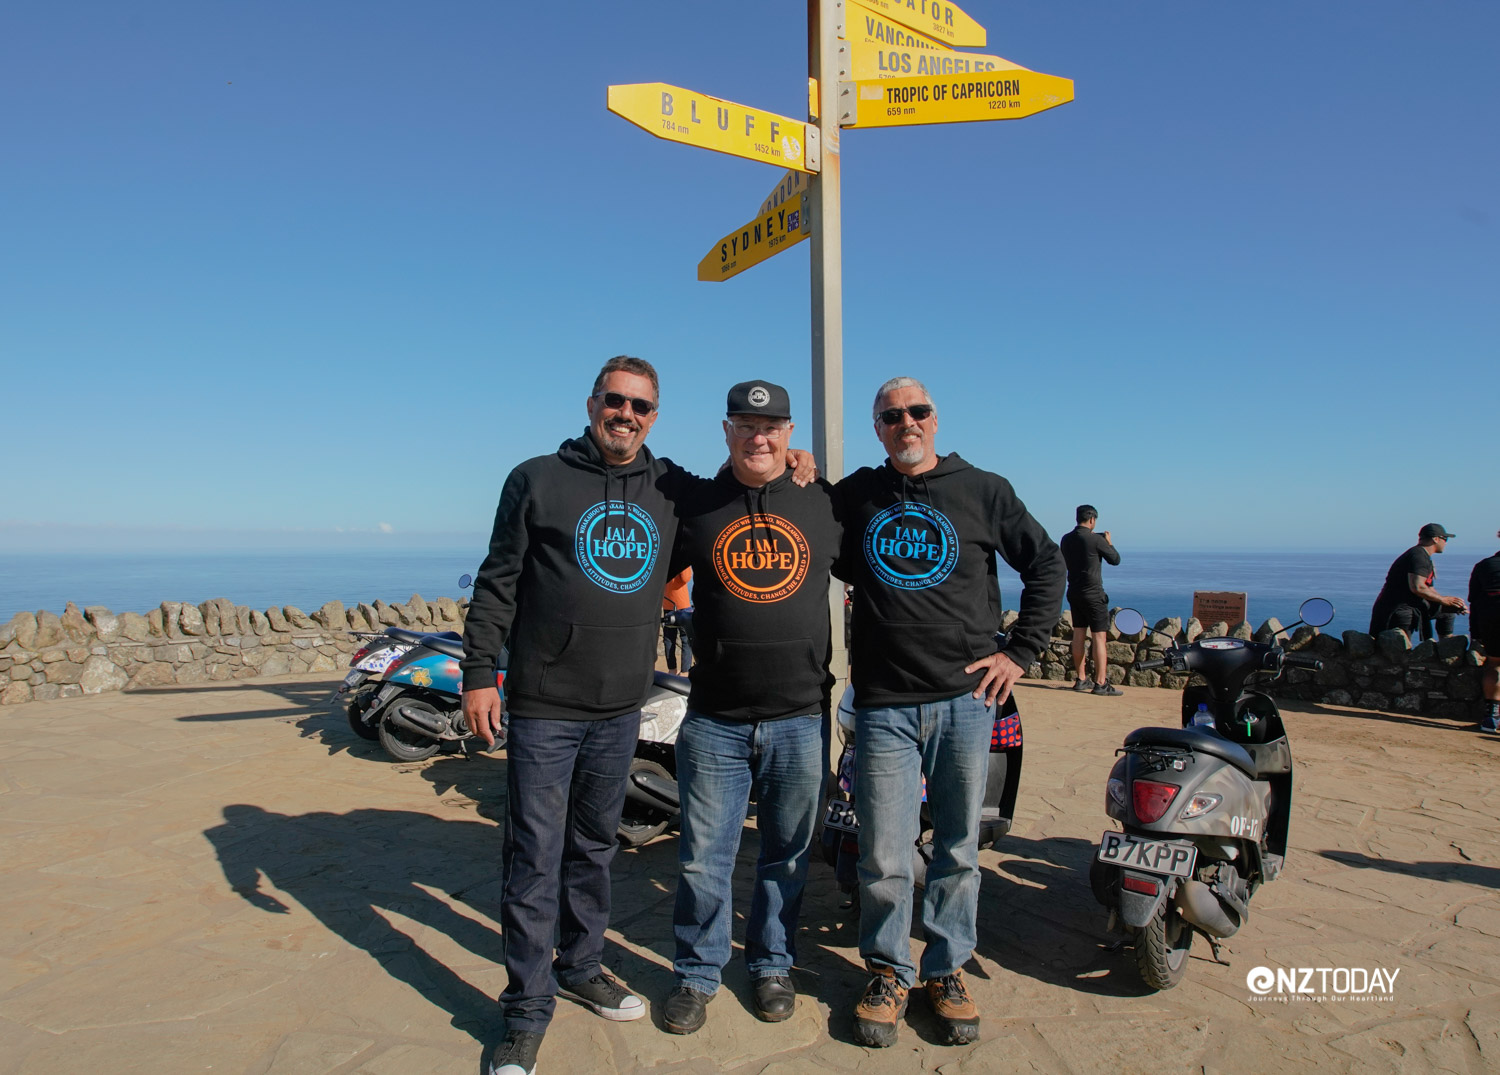 Made it. Mike King, Stephen Gray and Dallas Gopi, the three riders who did the entire trip from Bluff to Cape